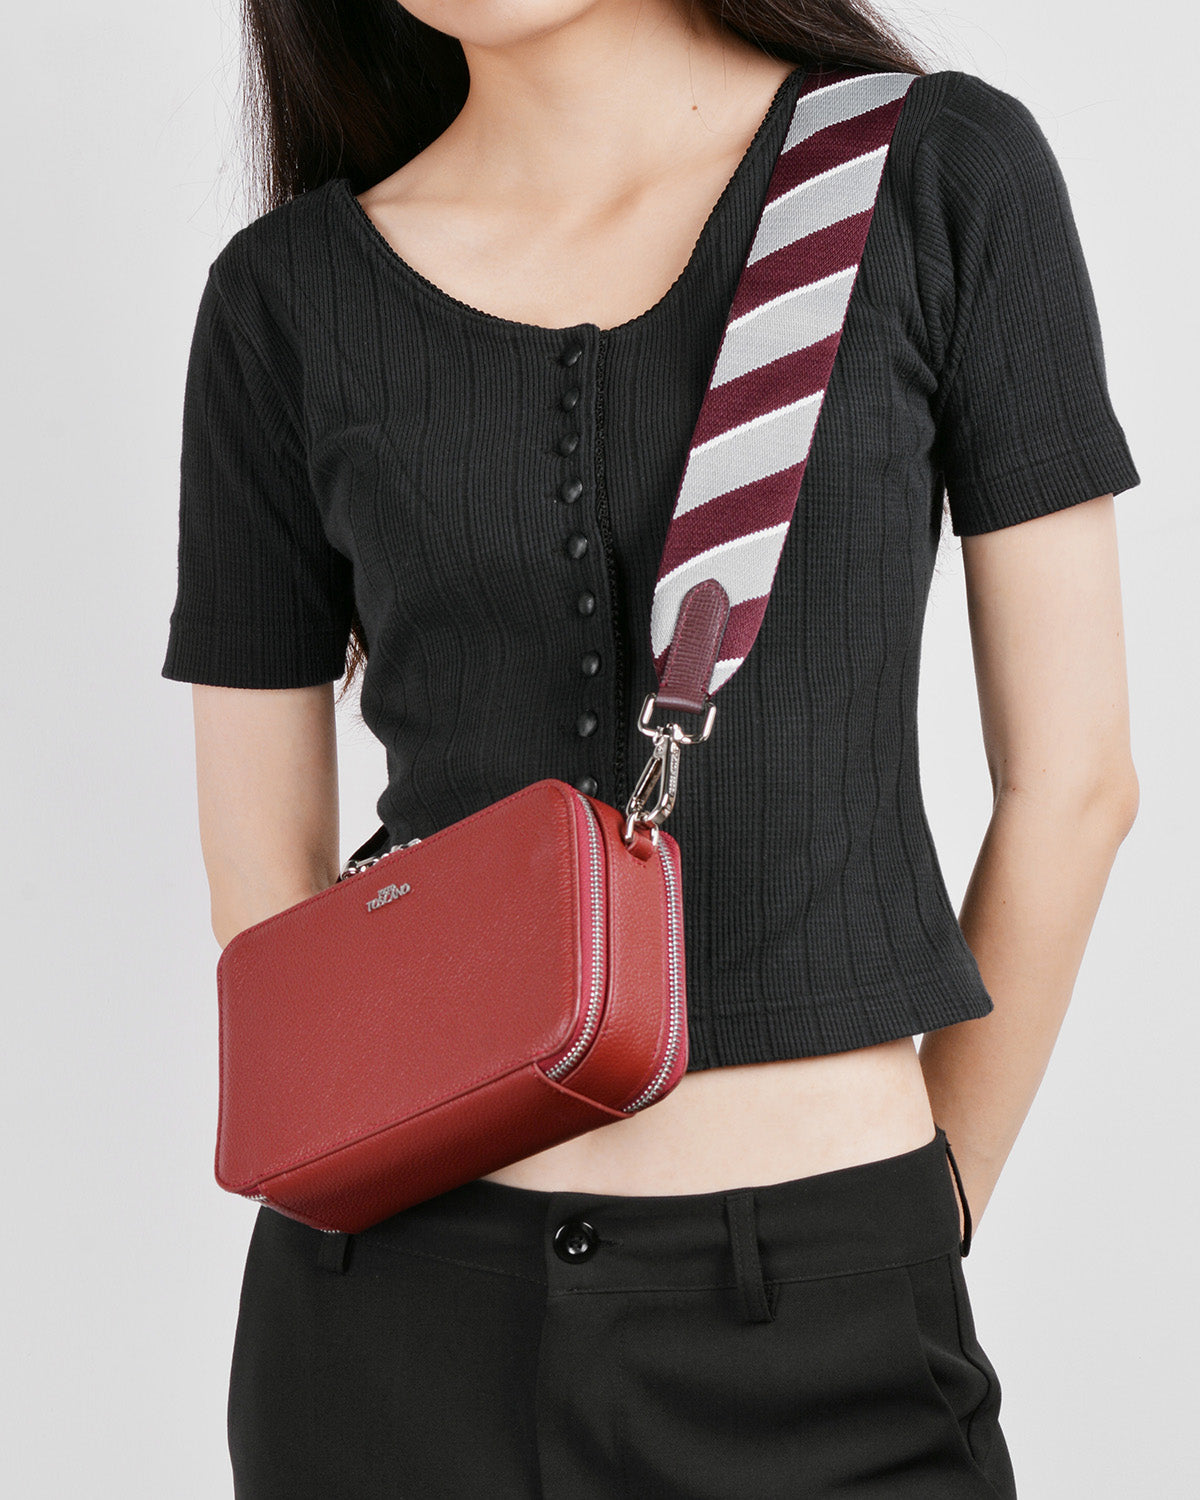 Webbing Bag Strap (Burgundy/Grey)